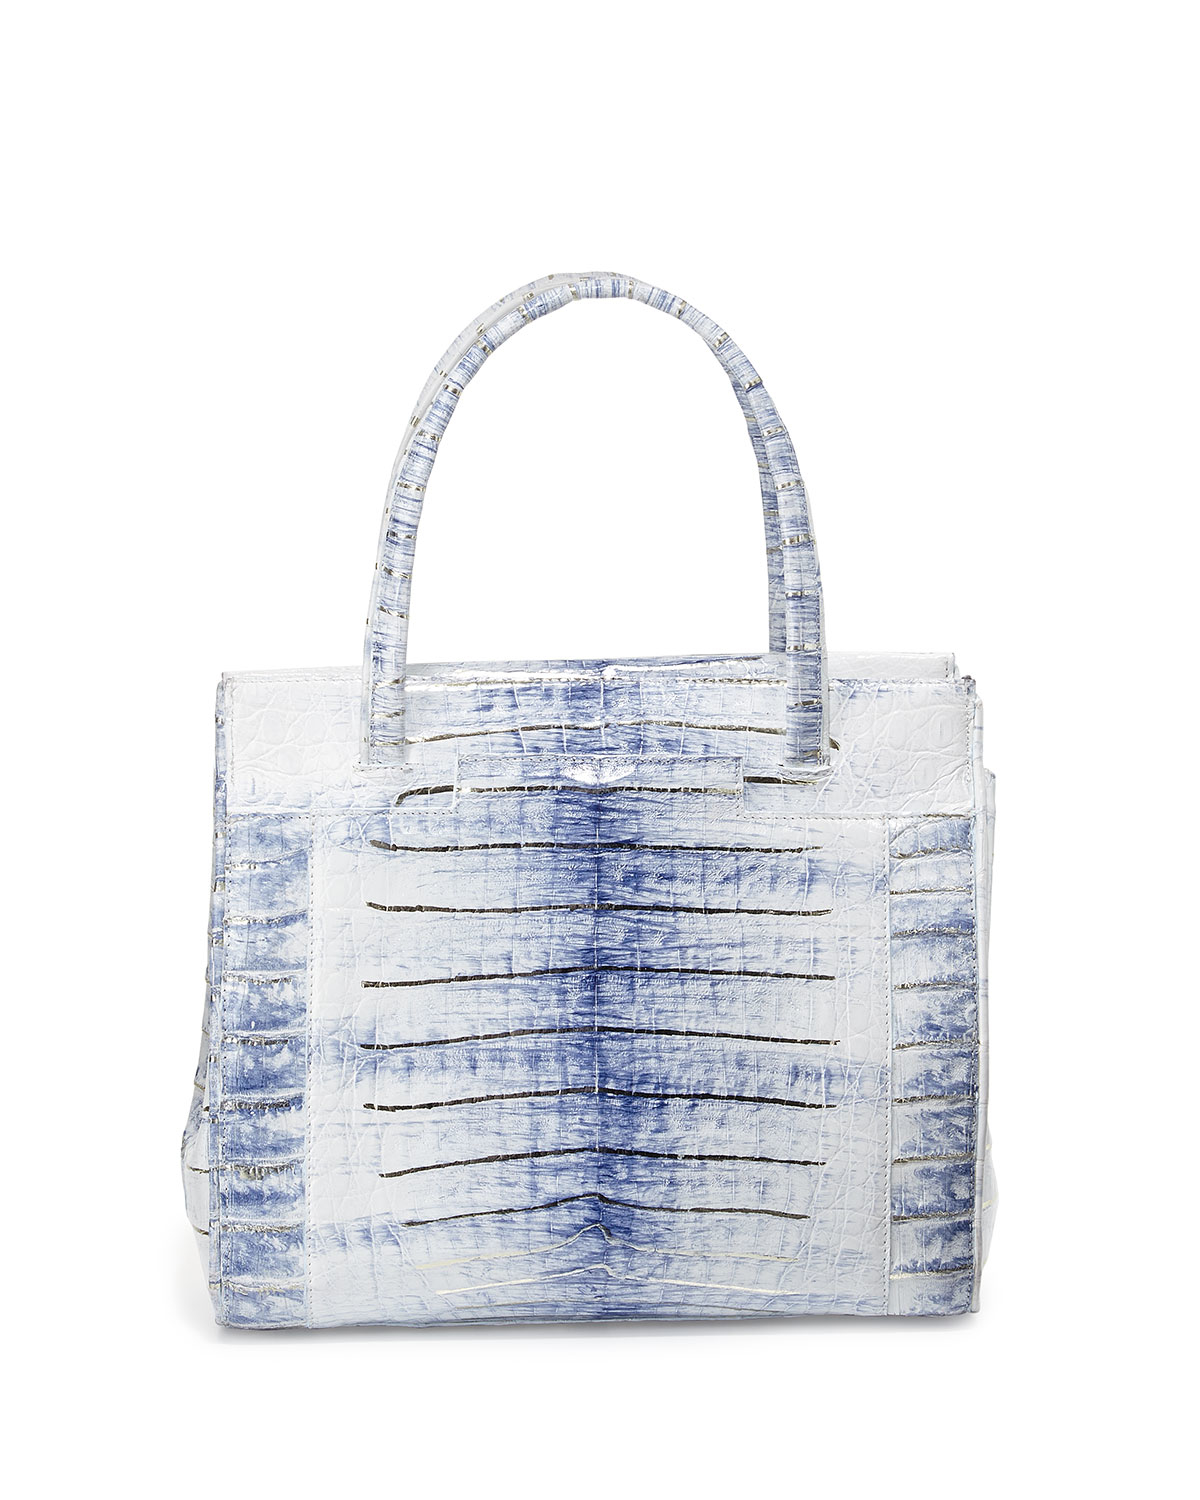 Lyst nancy gonzalez small crocodile tote bag in white for Nancy gonzalez crocodile tote